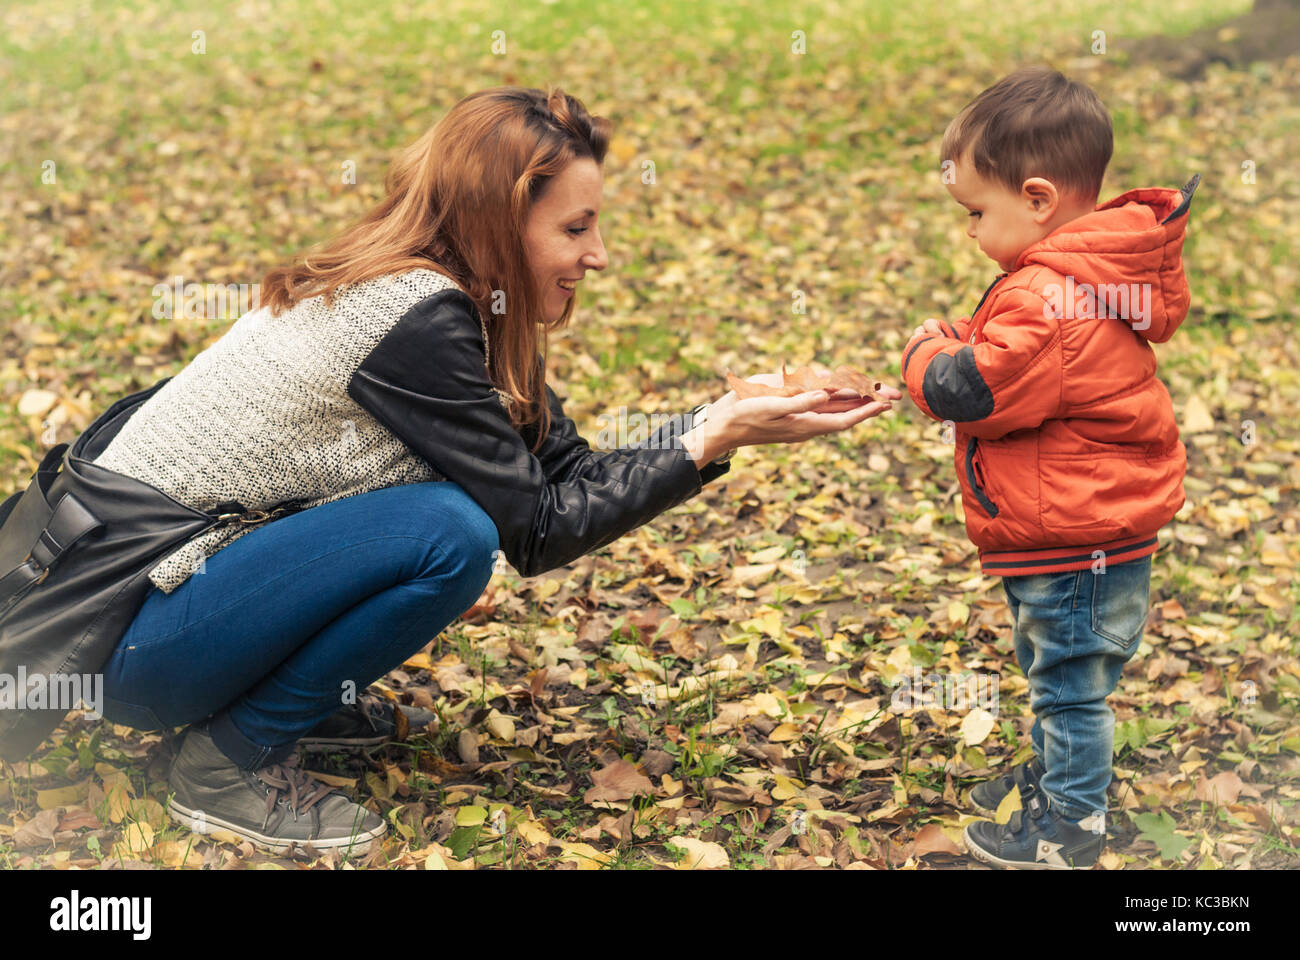 Mom and her young son playing in the park, autumn moments - Stock Image